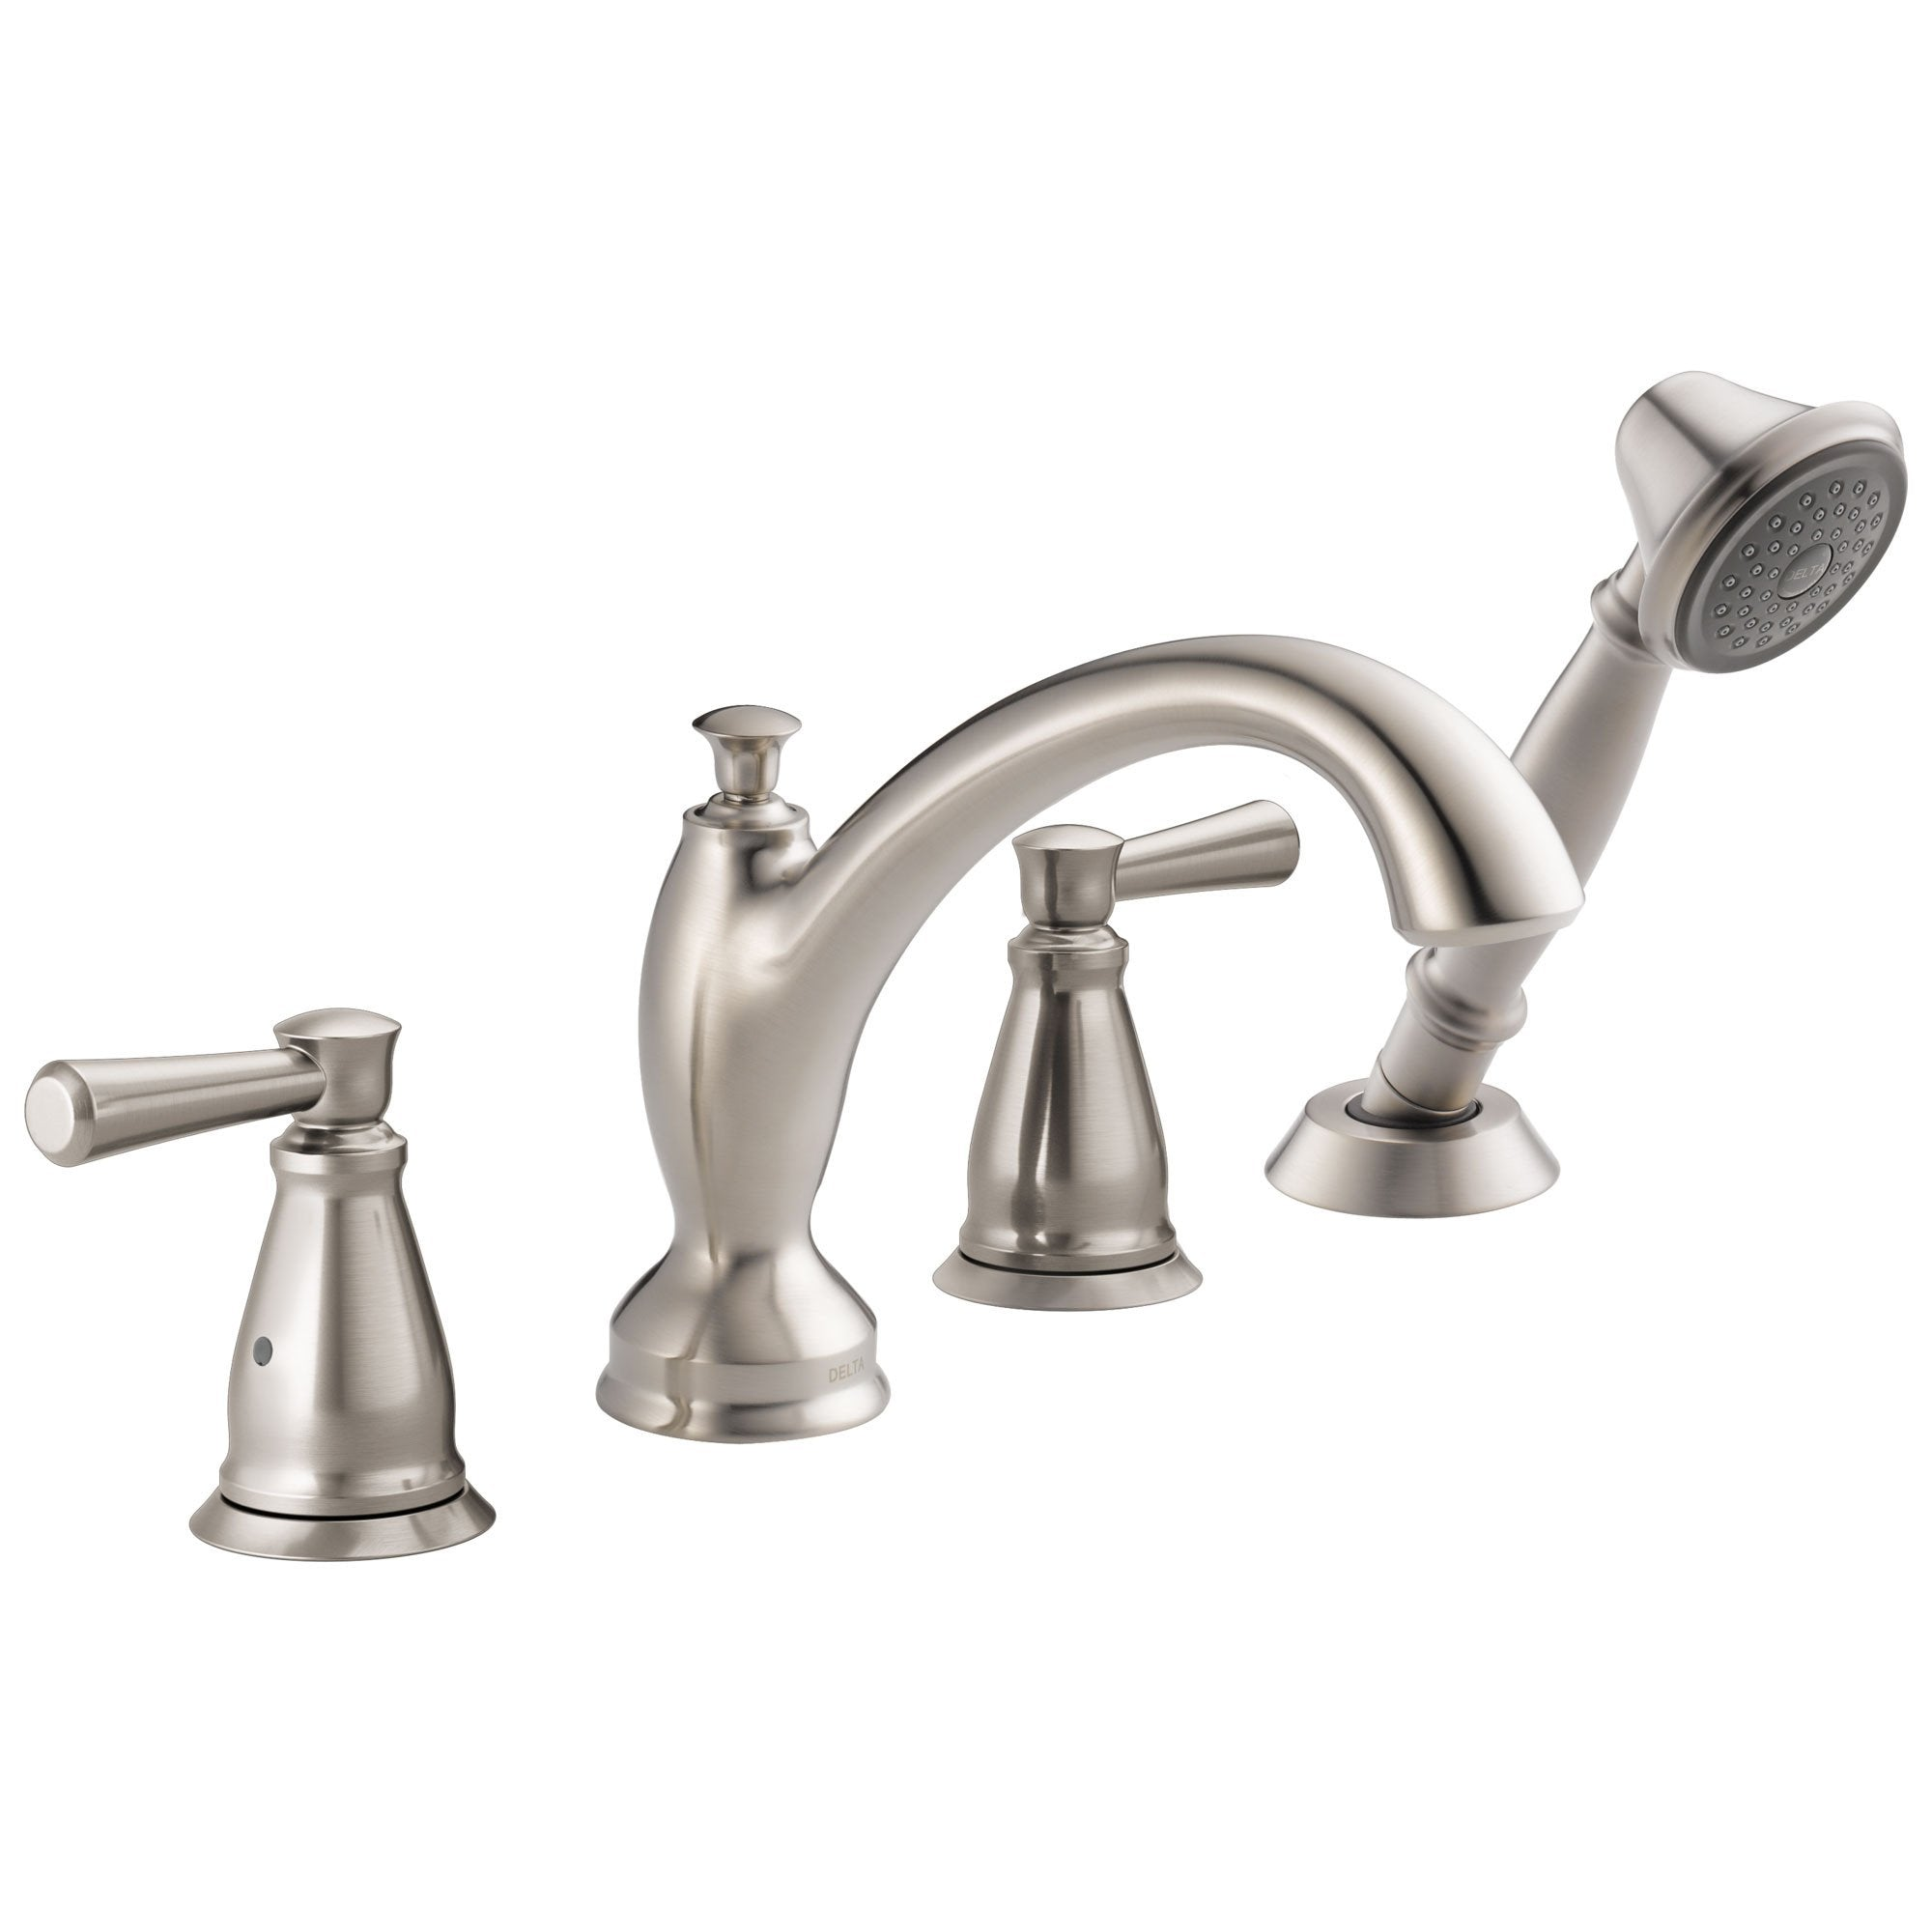 Delta Linden Collection Stainless Steel Finish Roman Tub Filler Faucet with Hand Shower Sprayer Trim Kit (Requires Rough-in Valve) DT4793SS